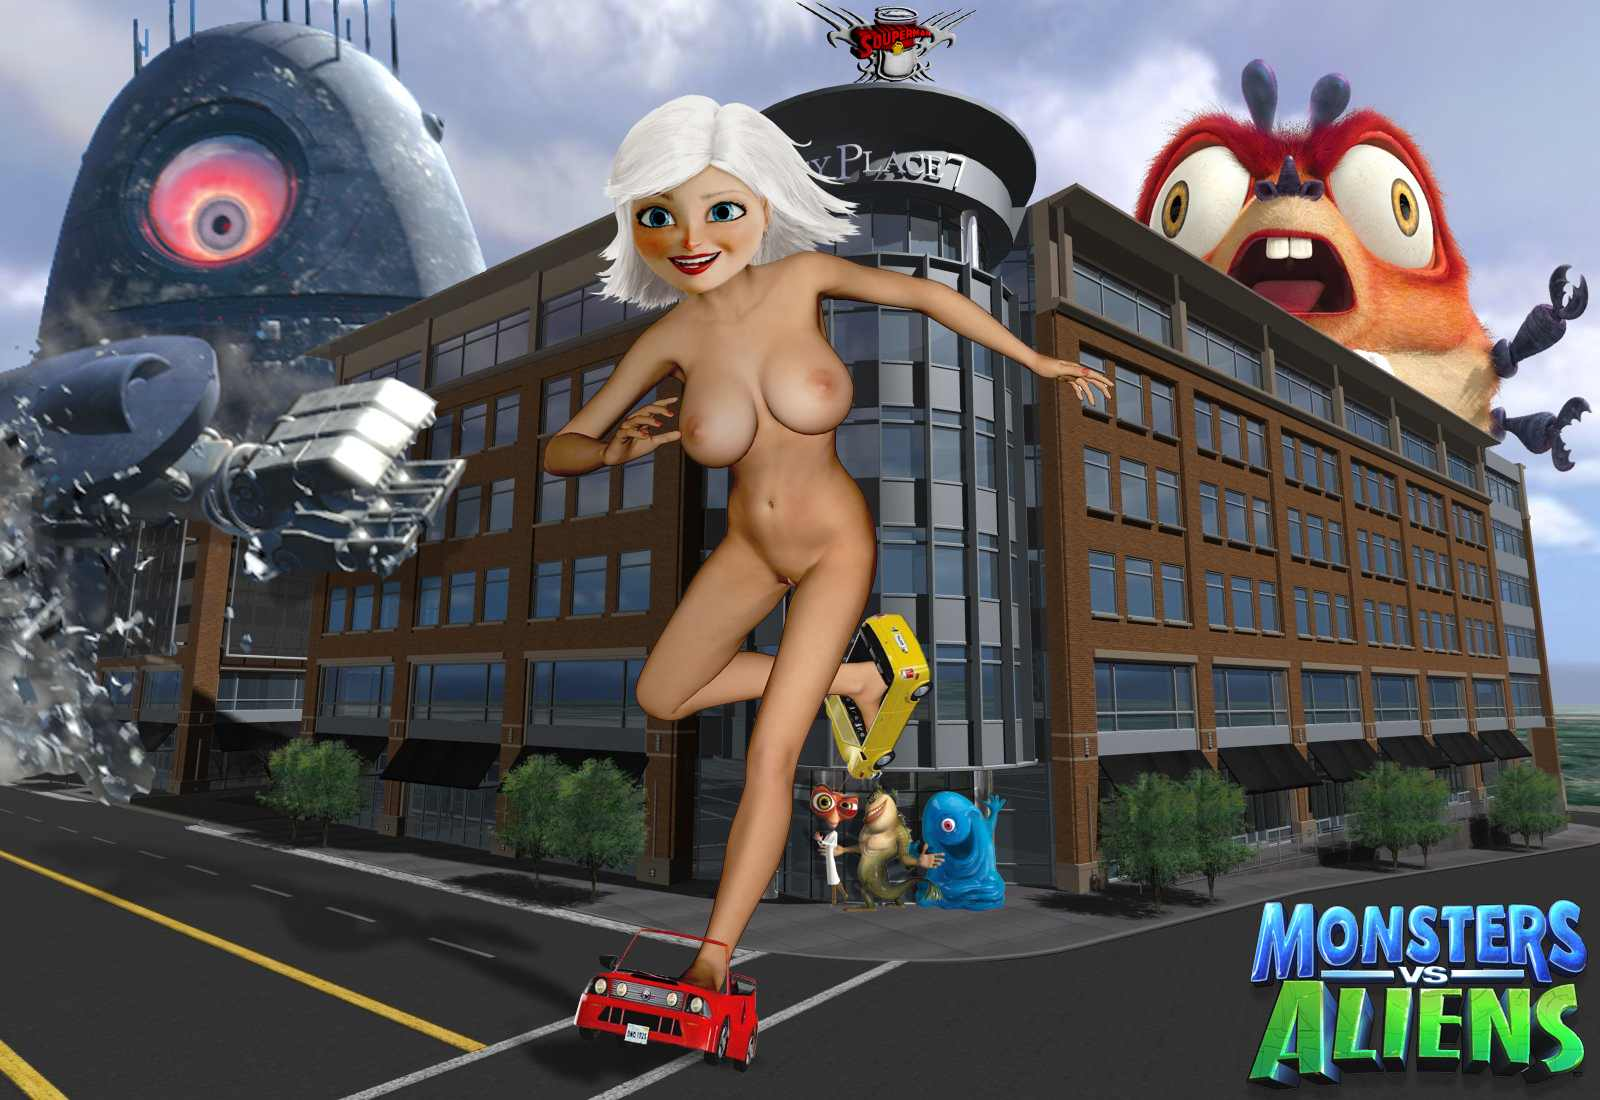 Monster vs aliens porno pic exposed movie